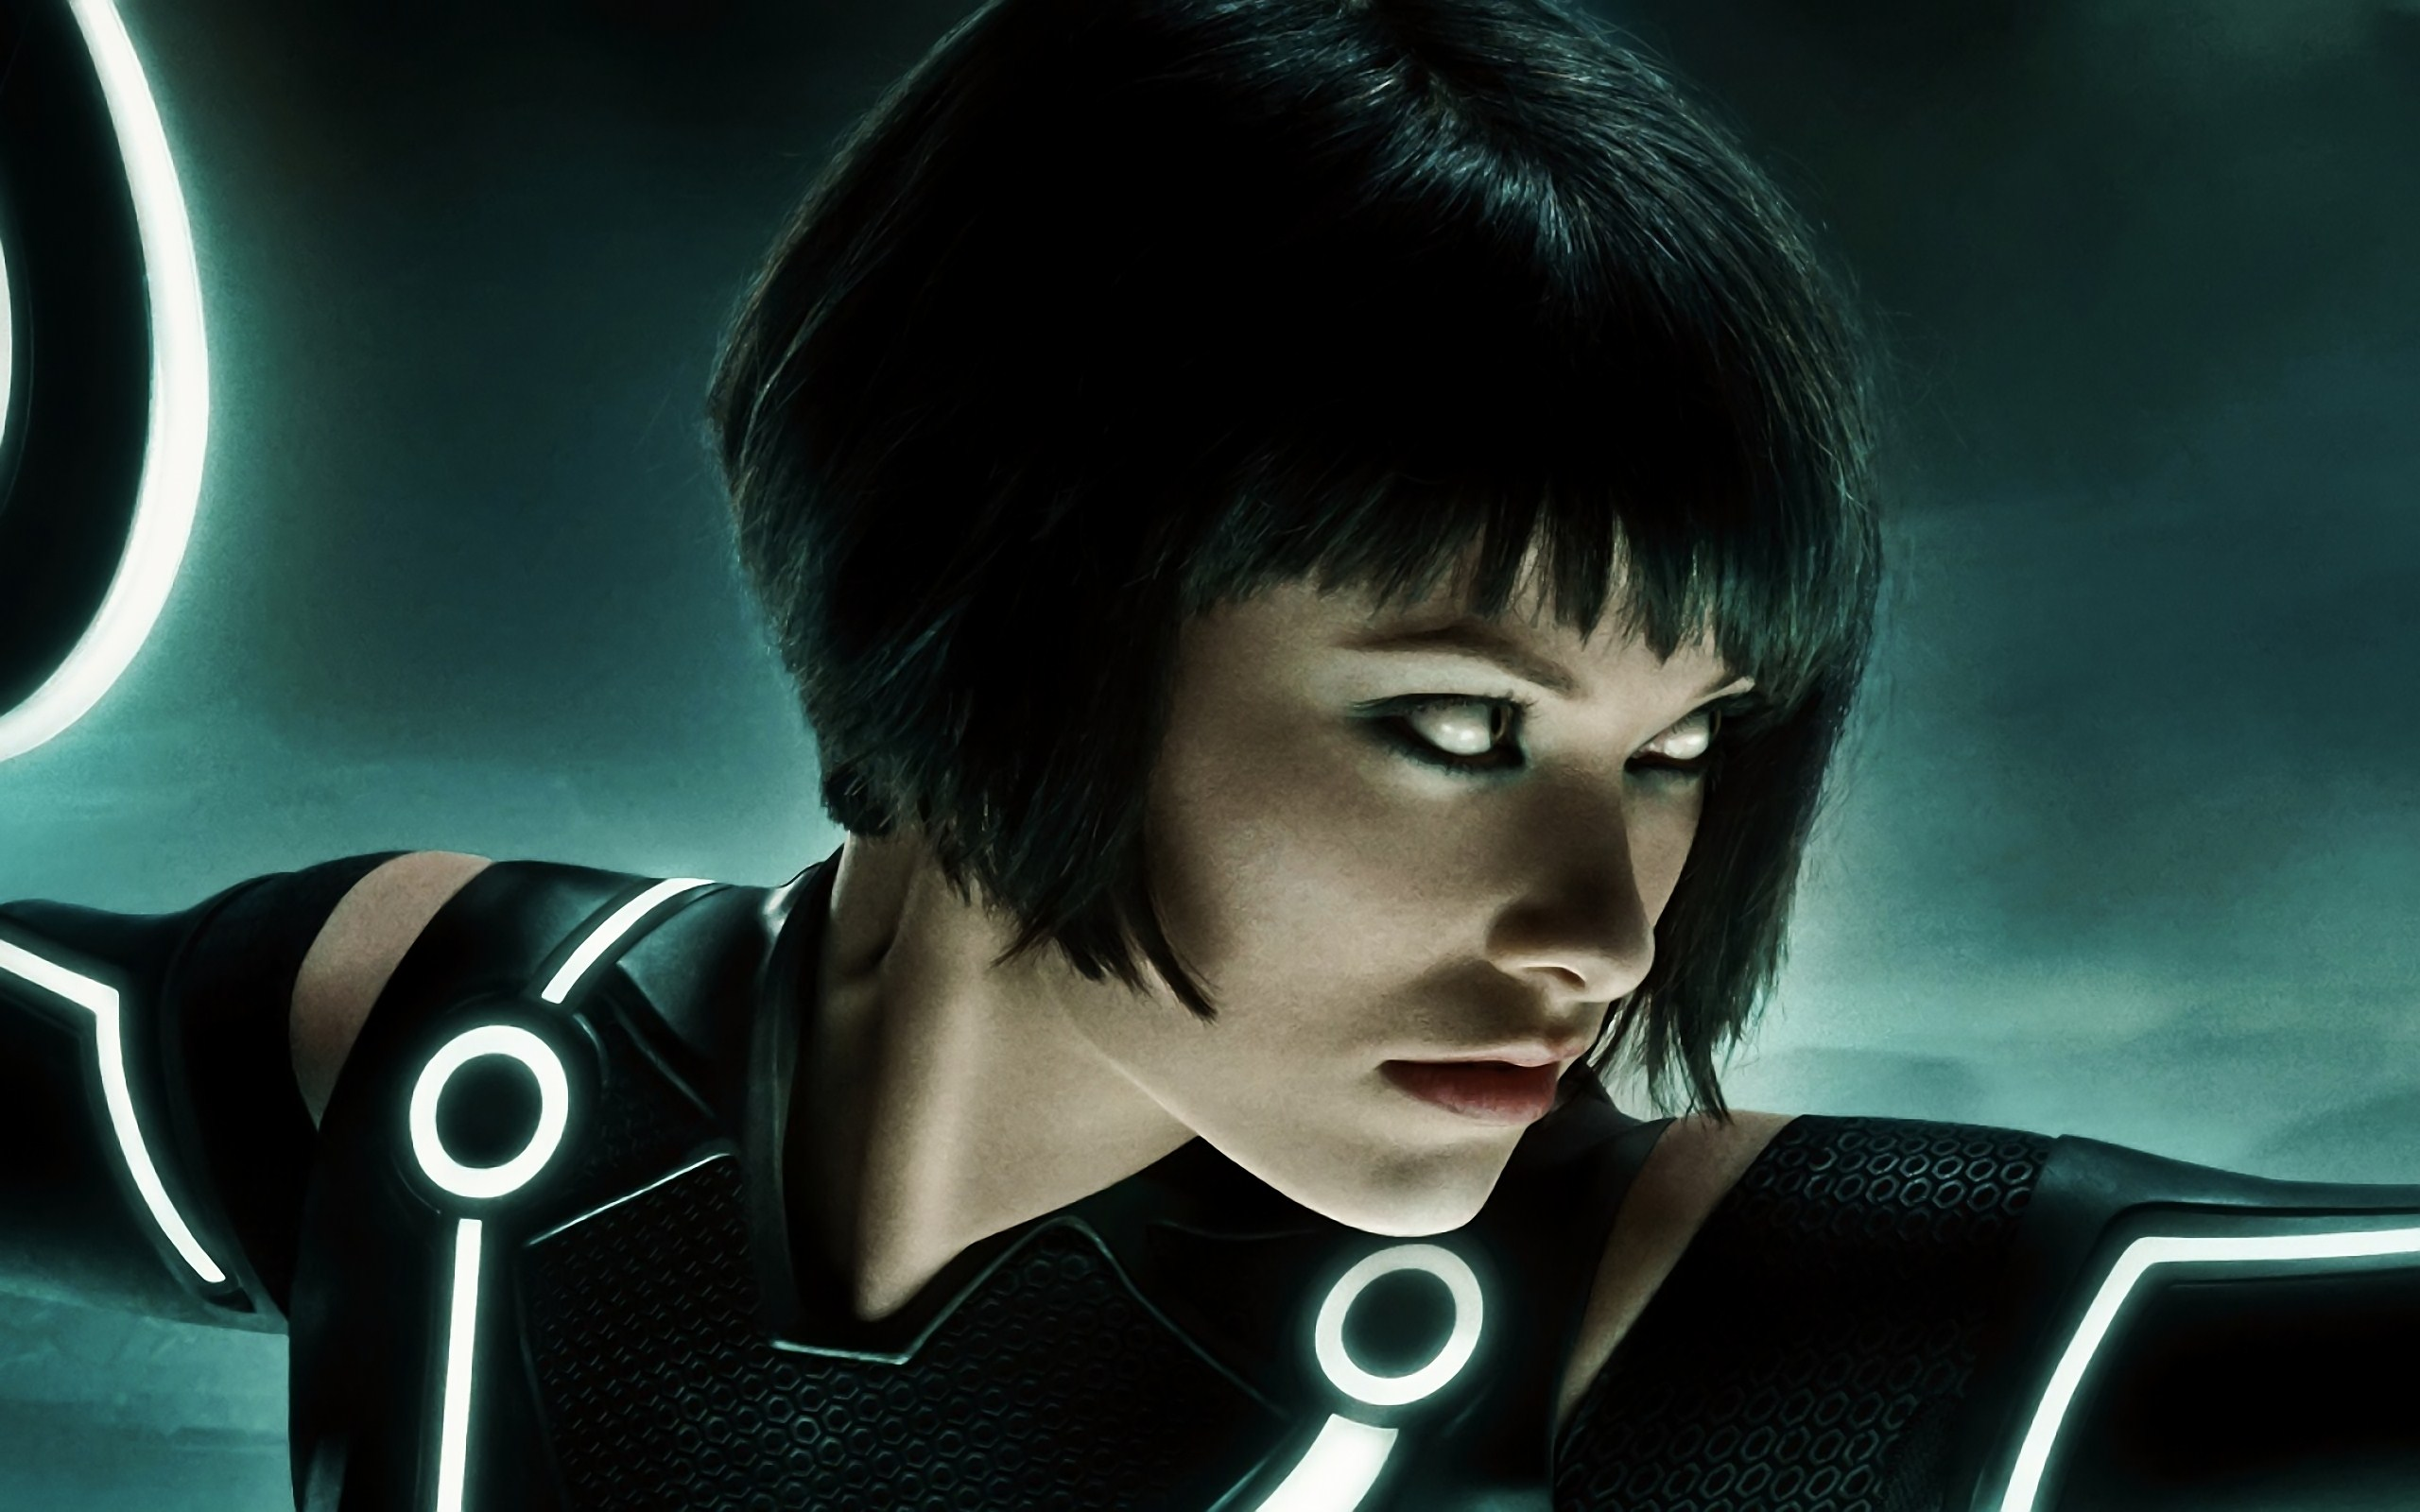 tron legacy beautiful hd desktop wallpapers - all hd wallpapers